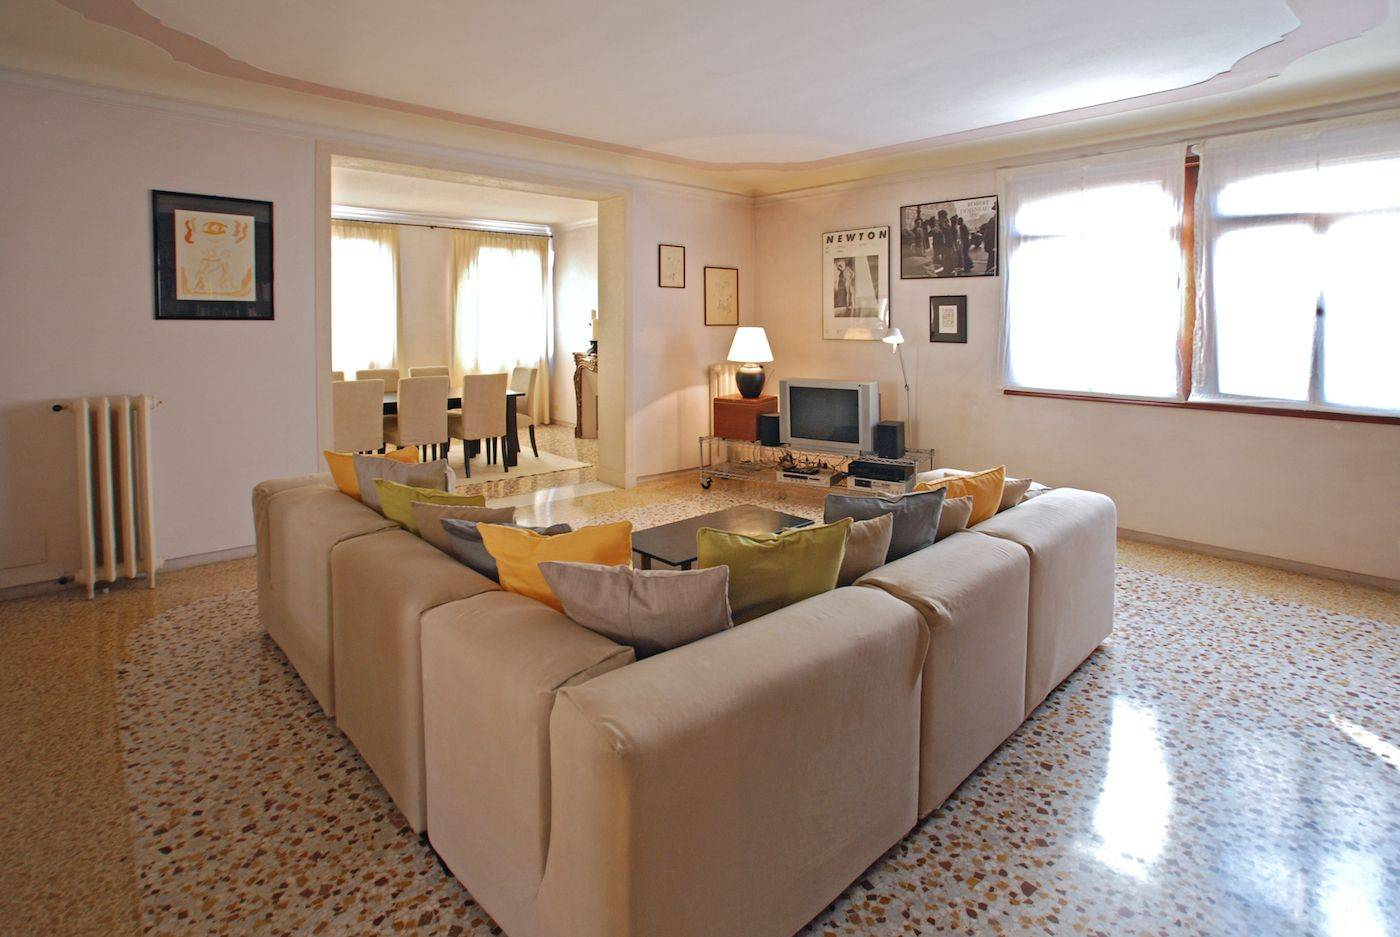 Gradenigo spacious and welcoming home with great view